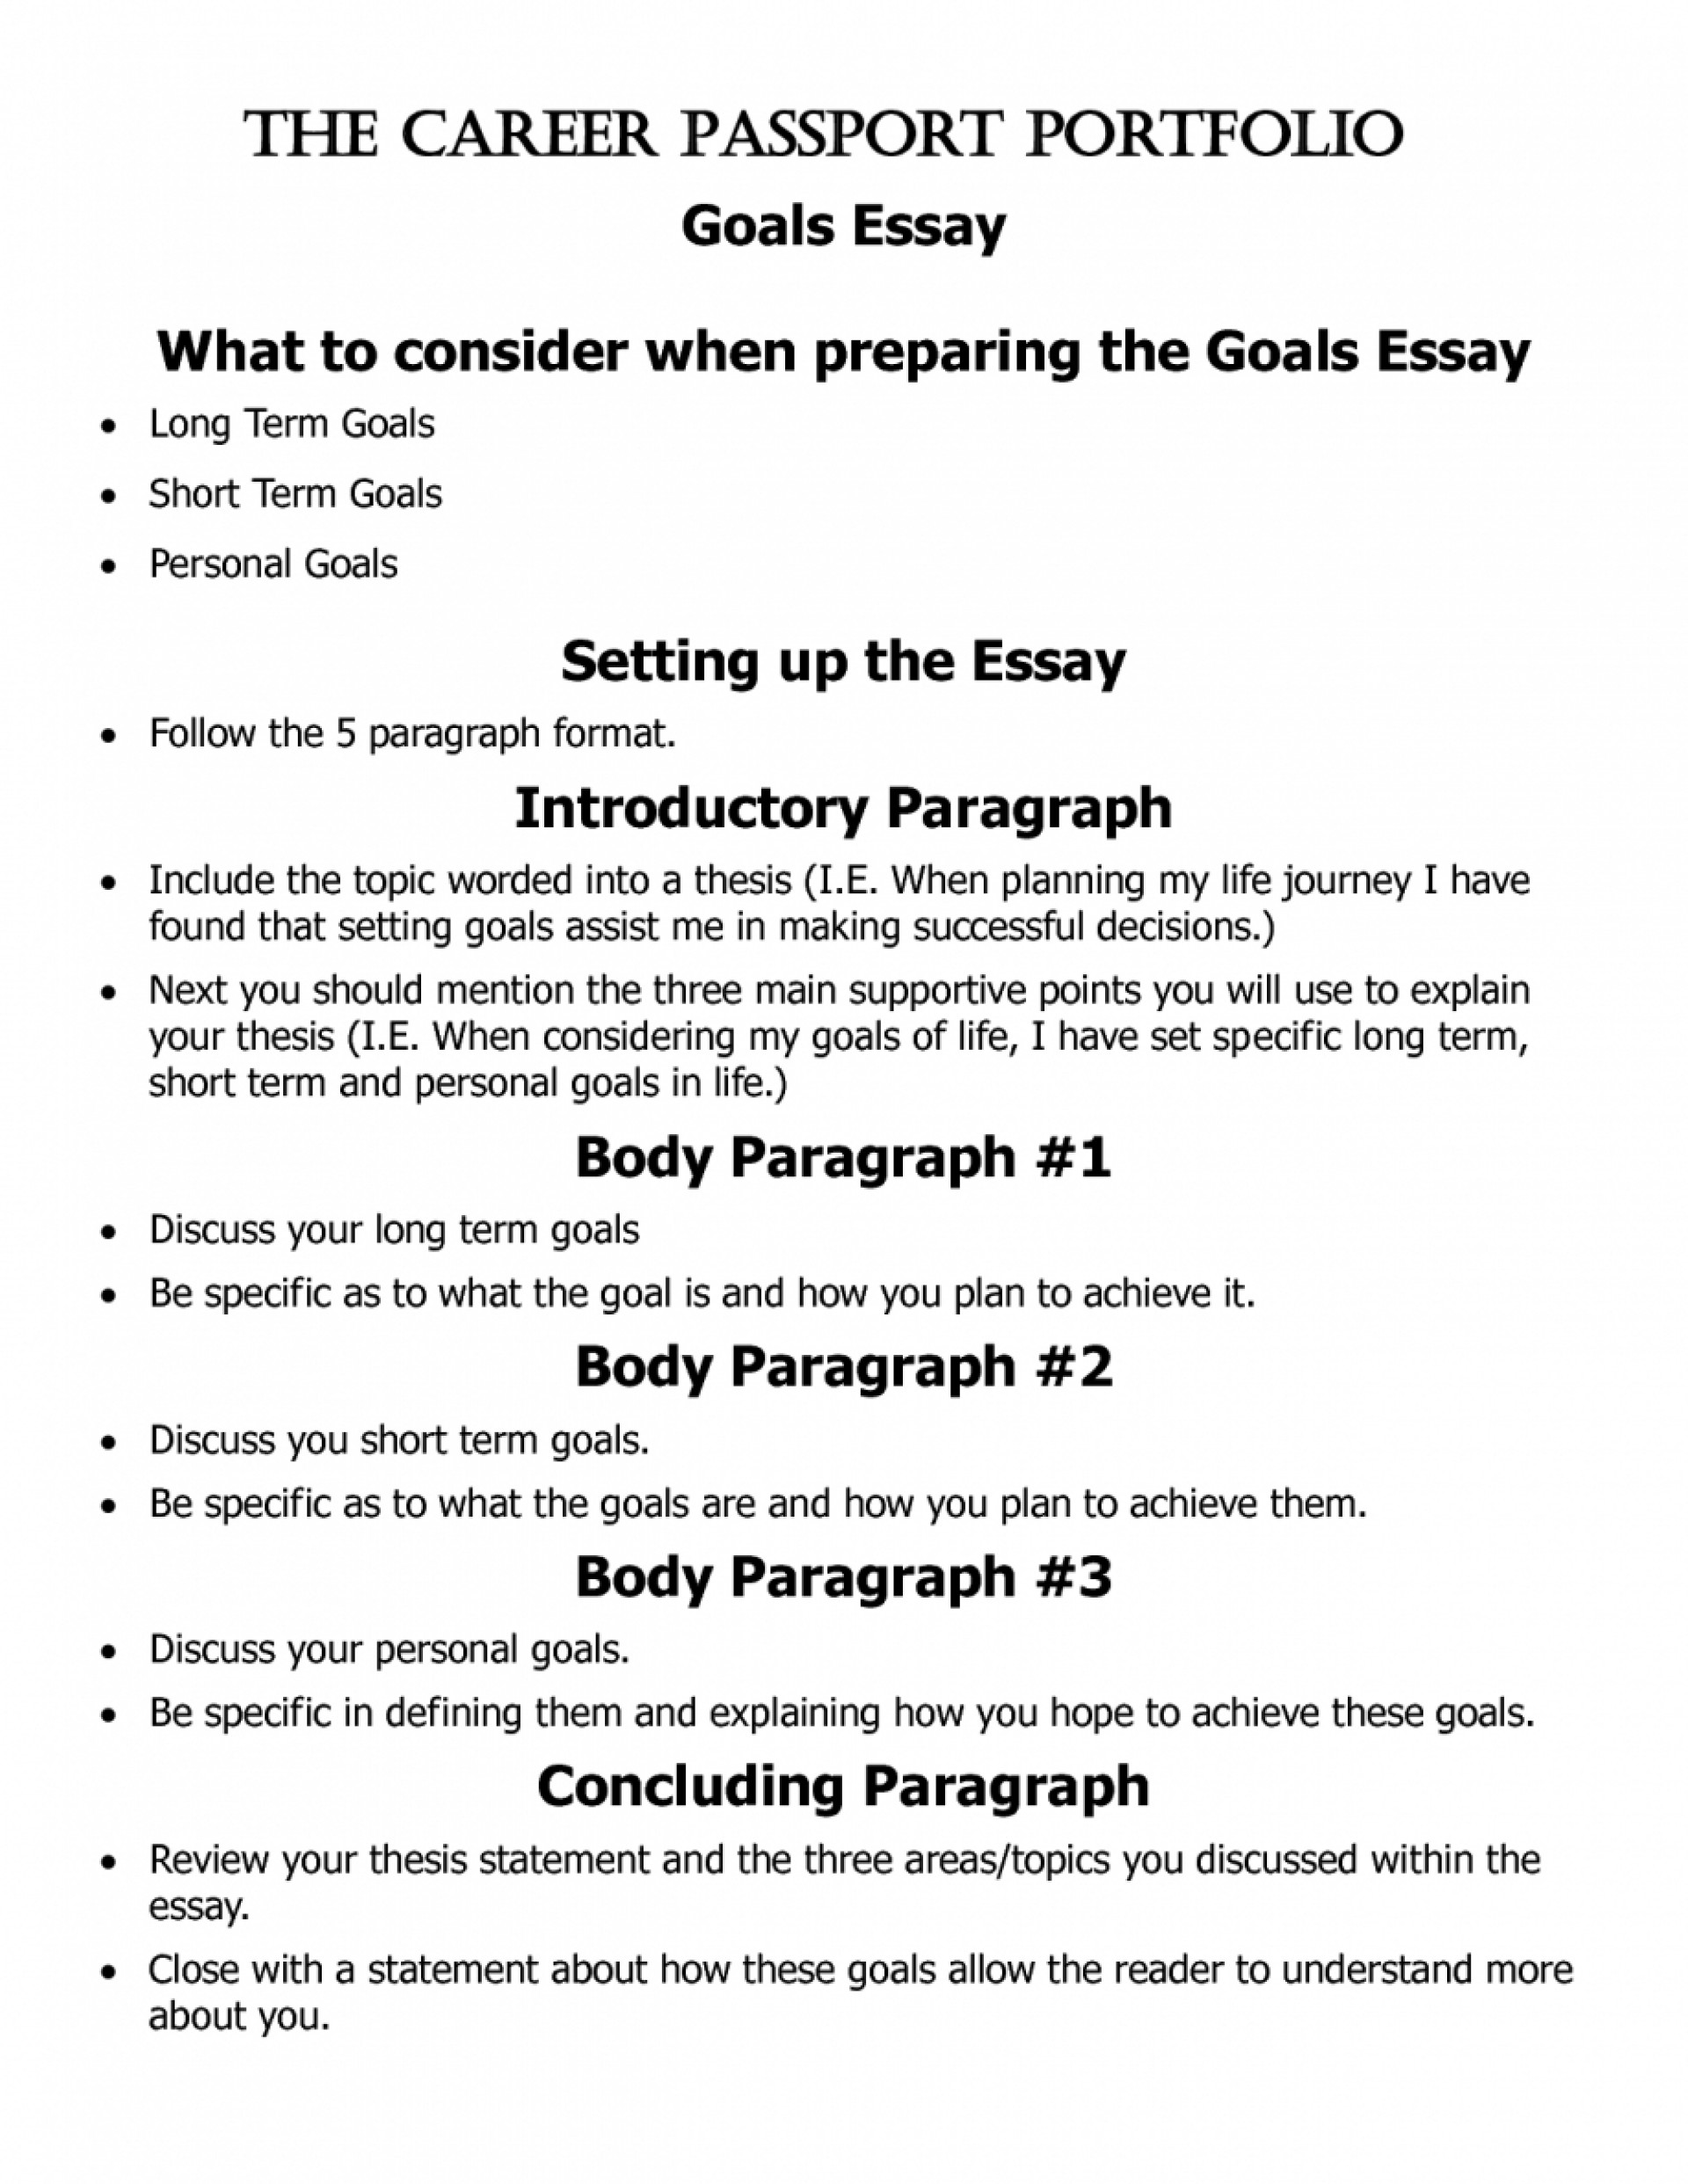 004 How Long Is Short Essay And Term Goals Pevita L Incredible A What Story In High School Answer 1920